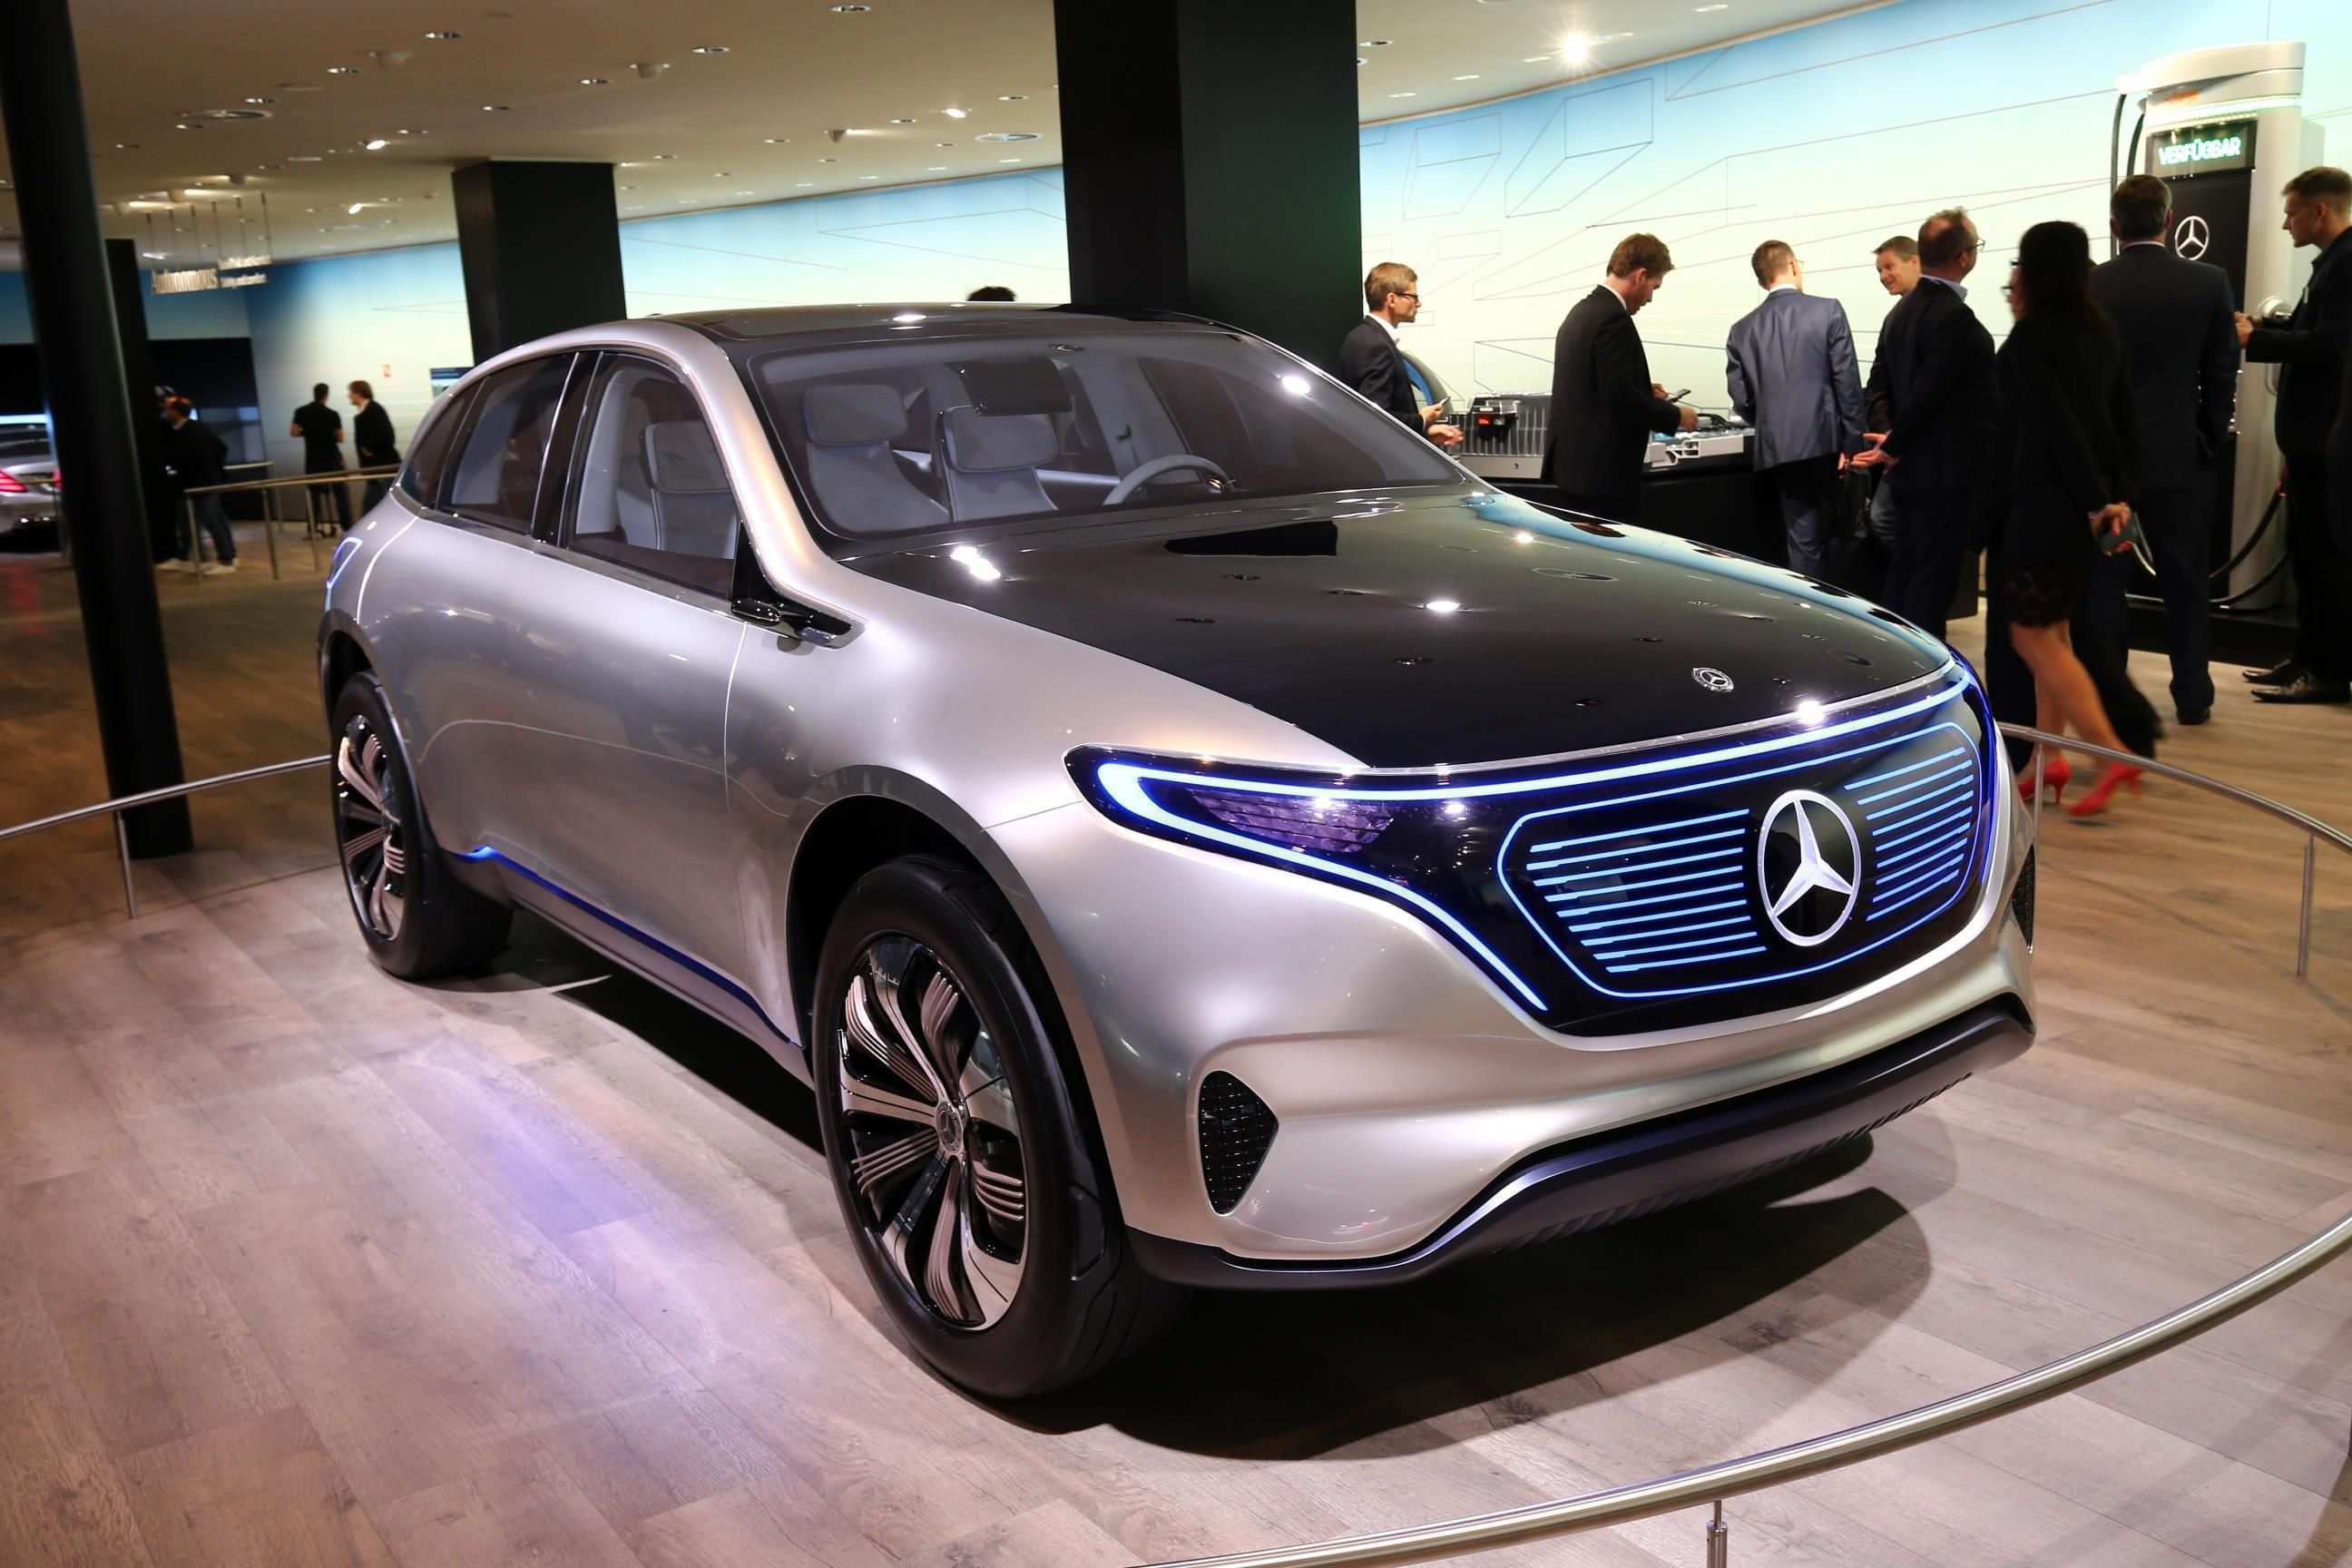 57 New The Mercedes Eq 2019 Price Rumors with The Mercedes Eq 2019 Price